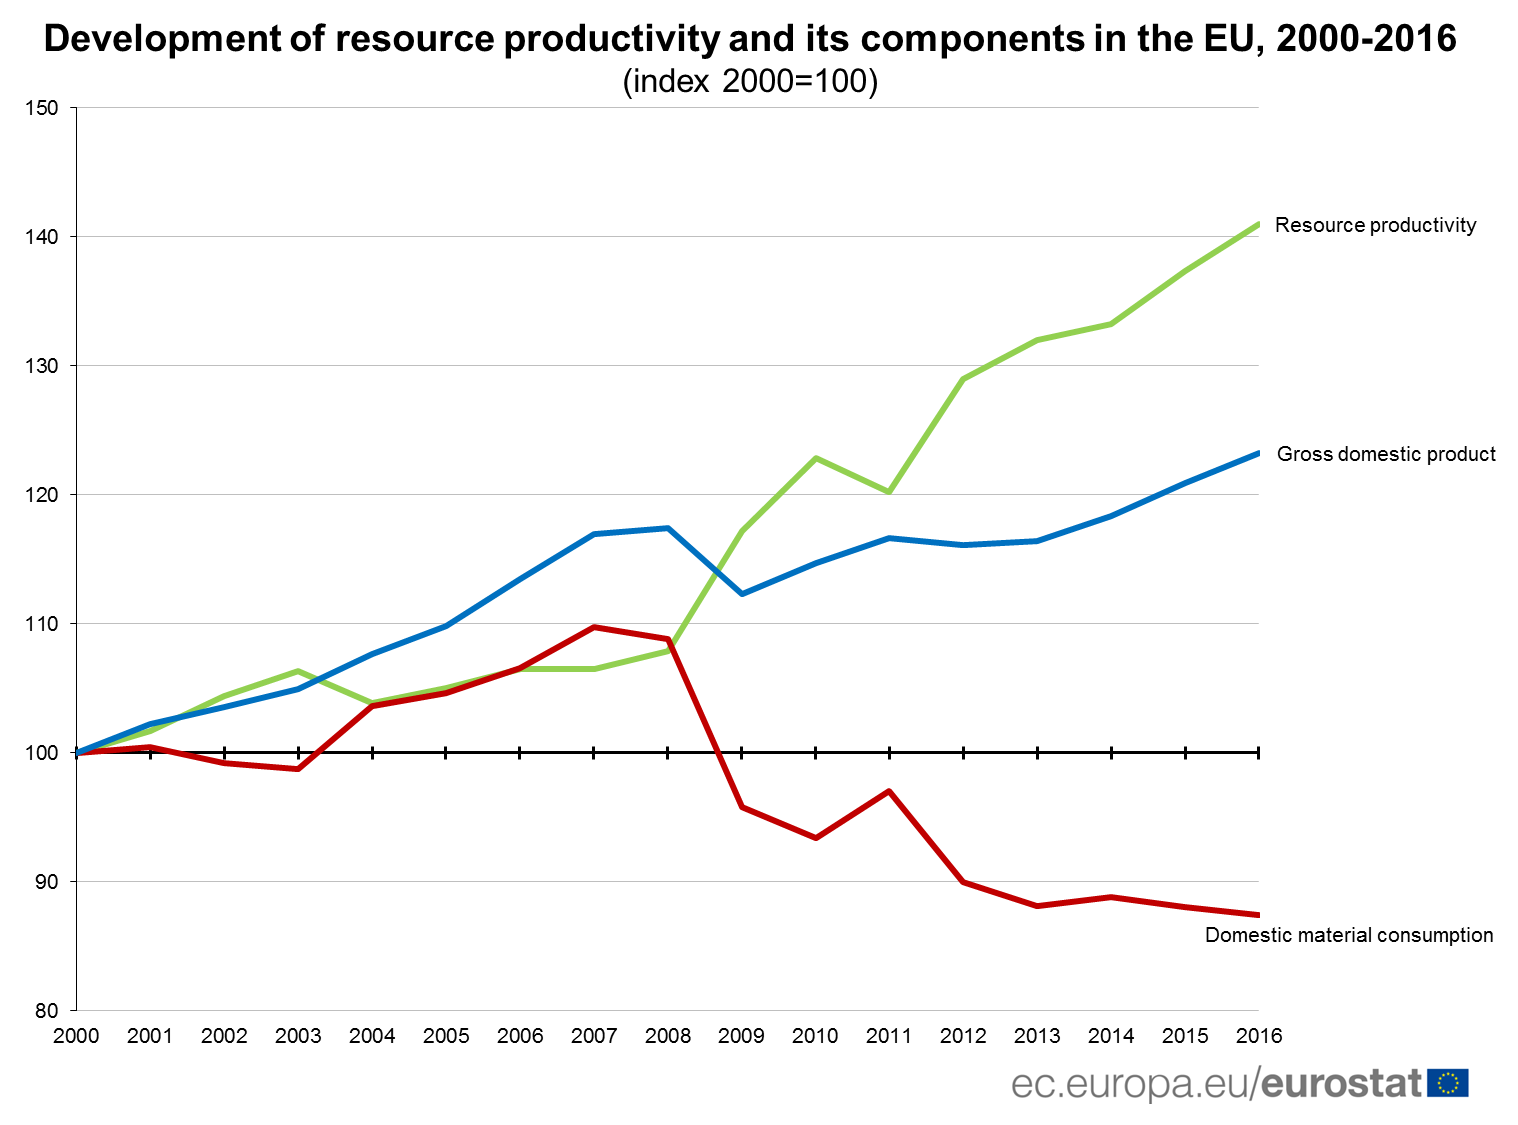 Development of ressource productivity in the EU, 2000-2016